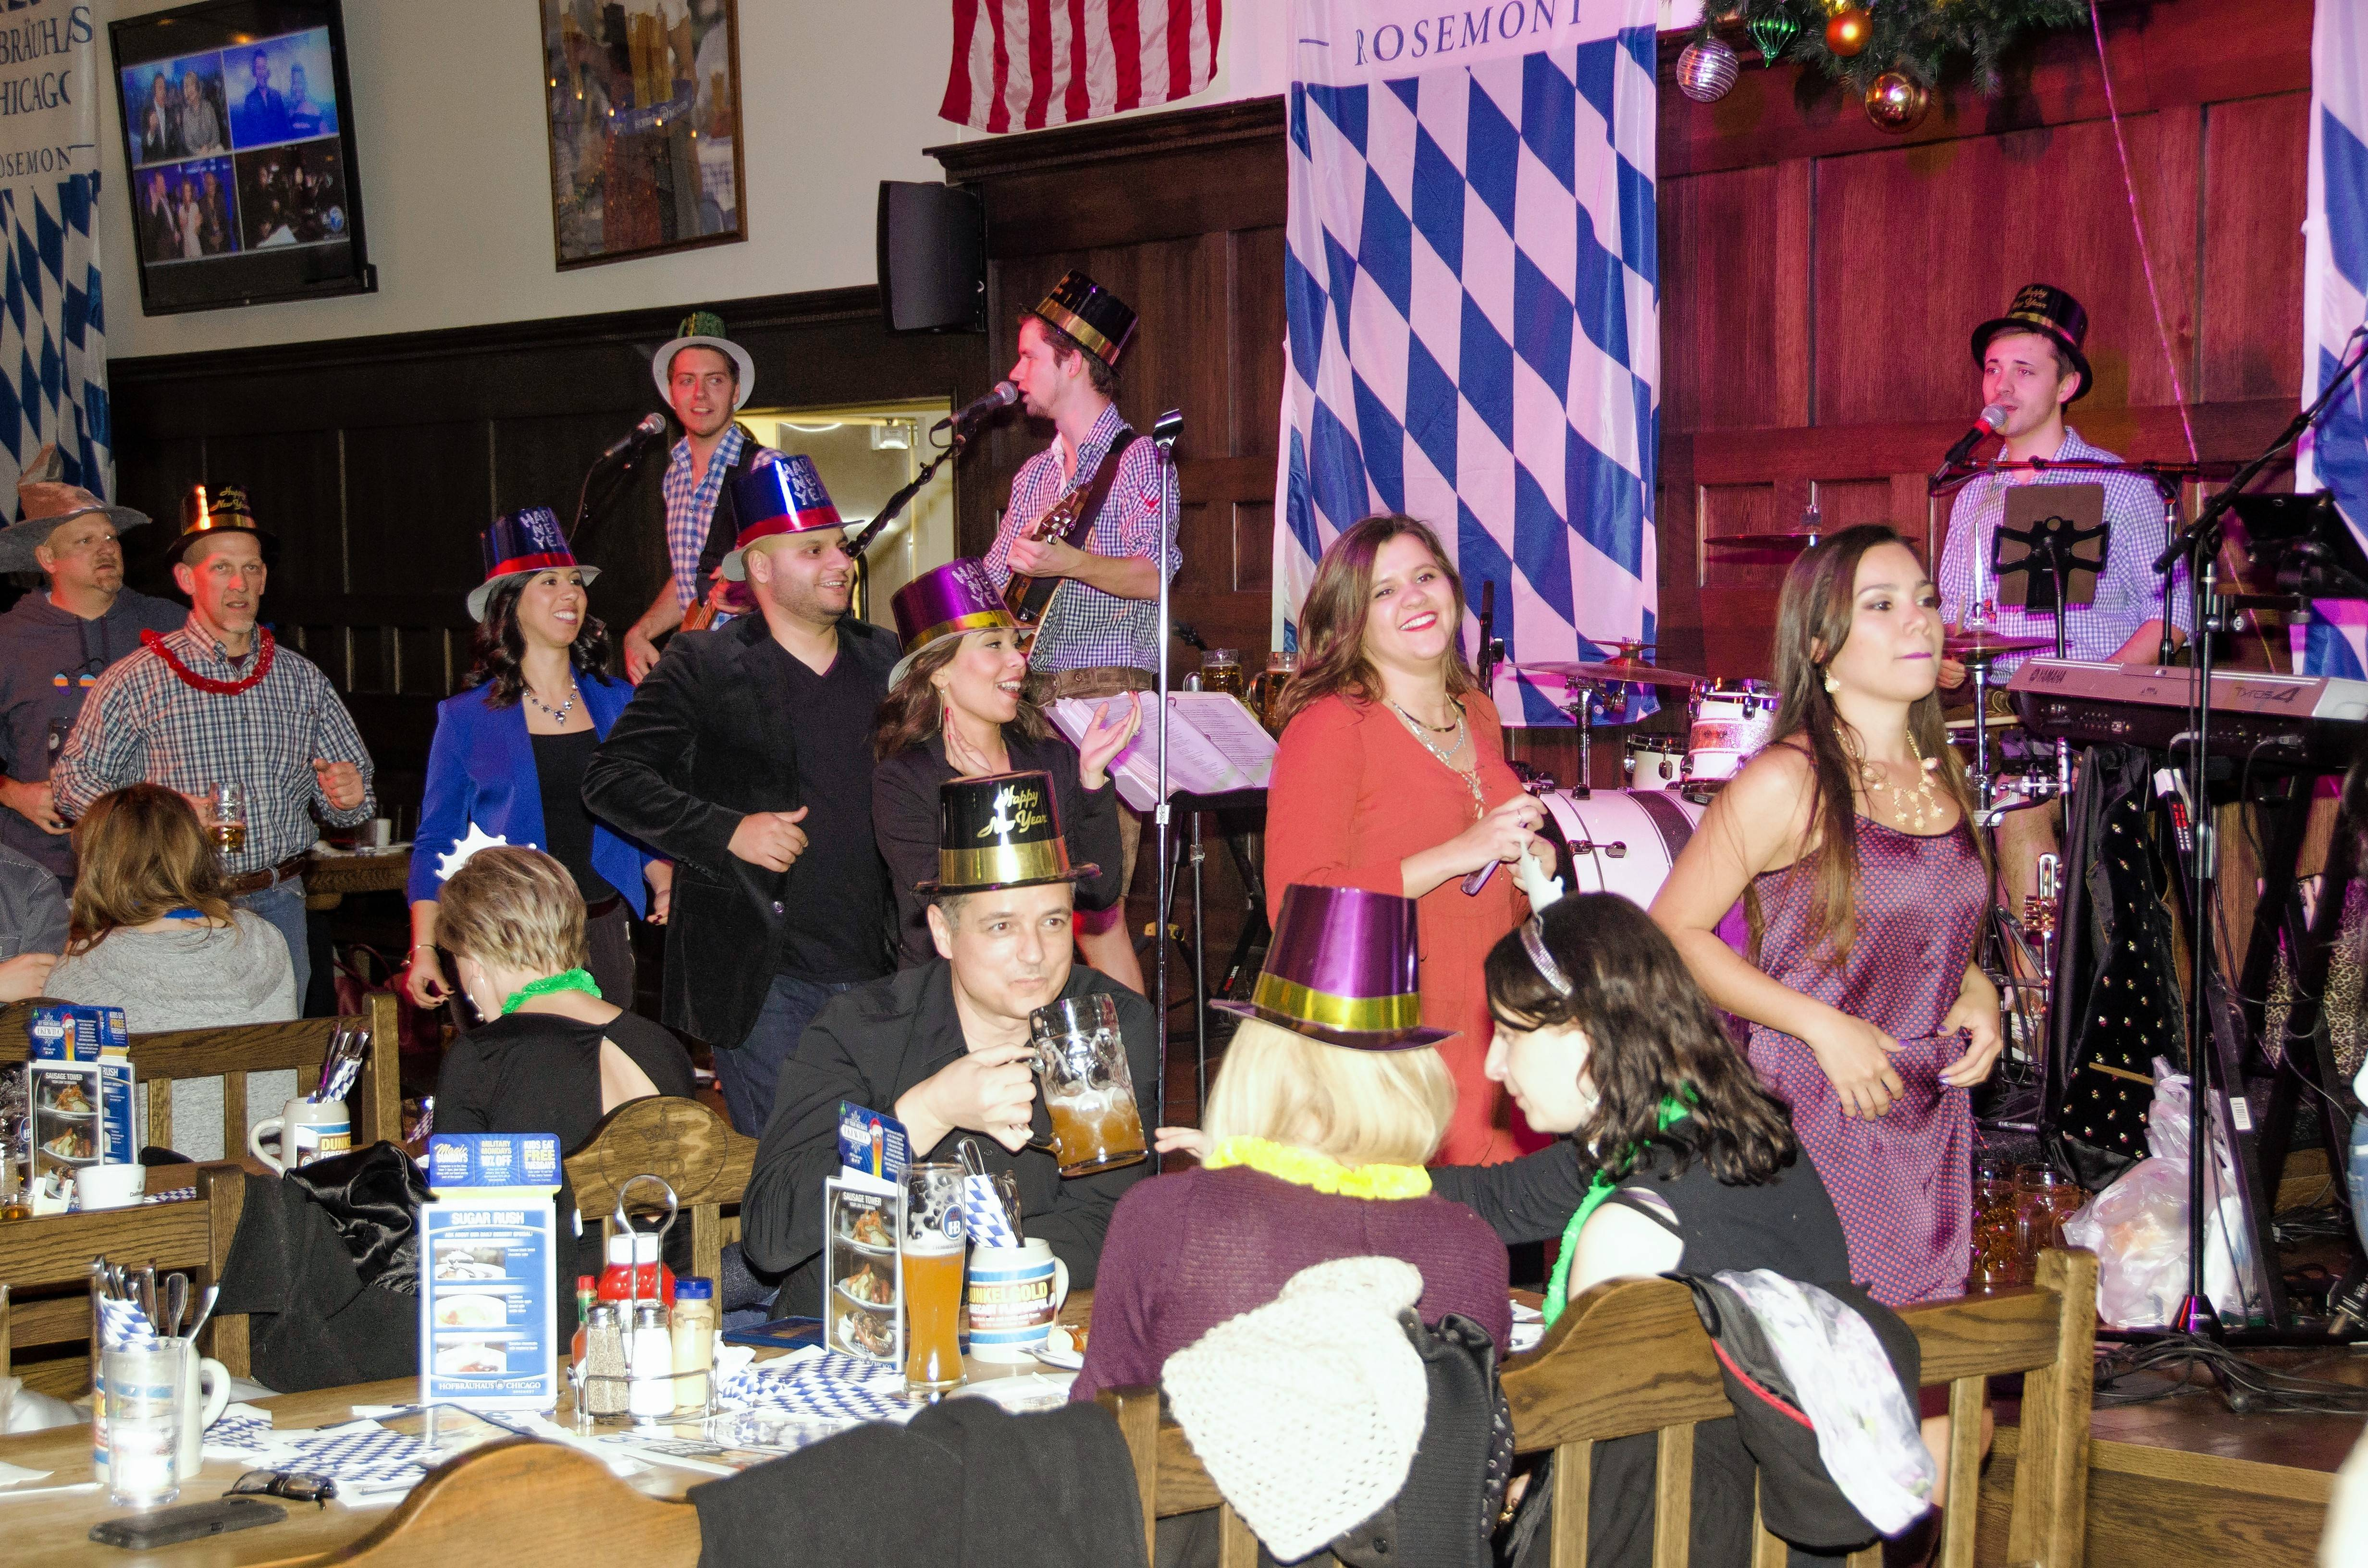 The music and beer will be flowing on New Year's Eve at Hofbrauhaus Chicago in Rosemont.